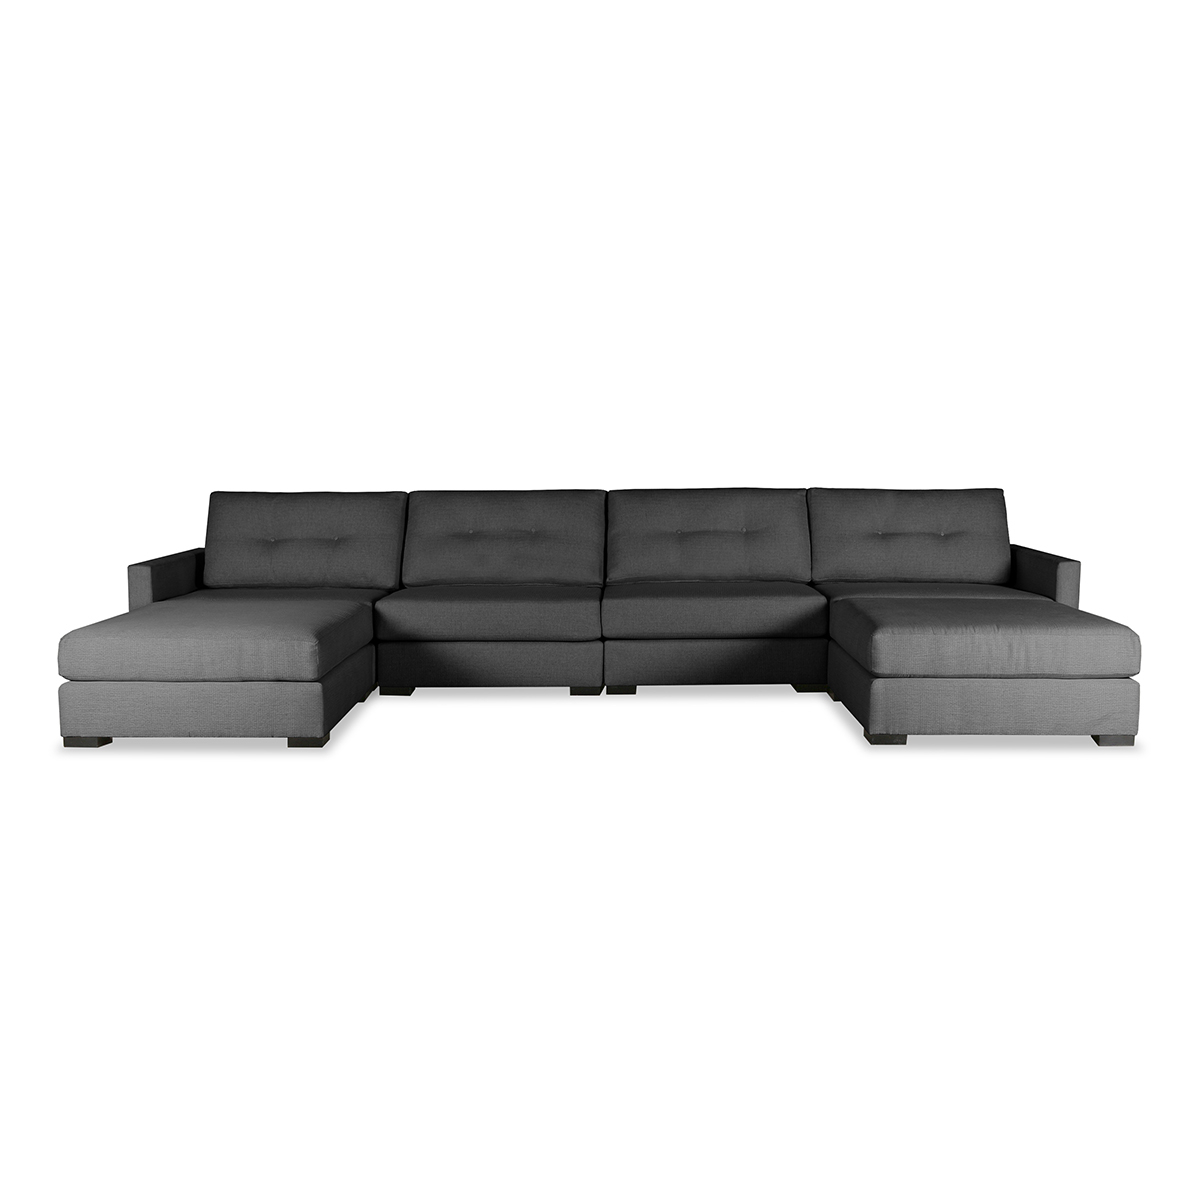 Wilton Fabric Sectional Sofas Within Well Known Wilton Buttoned Modular U Shape Double Chase Sectional (View 3 of 20)